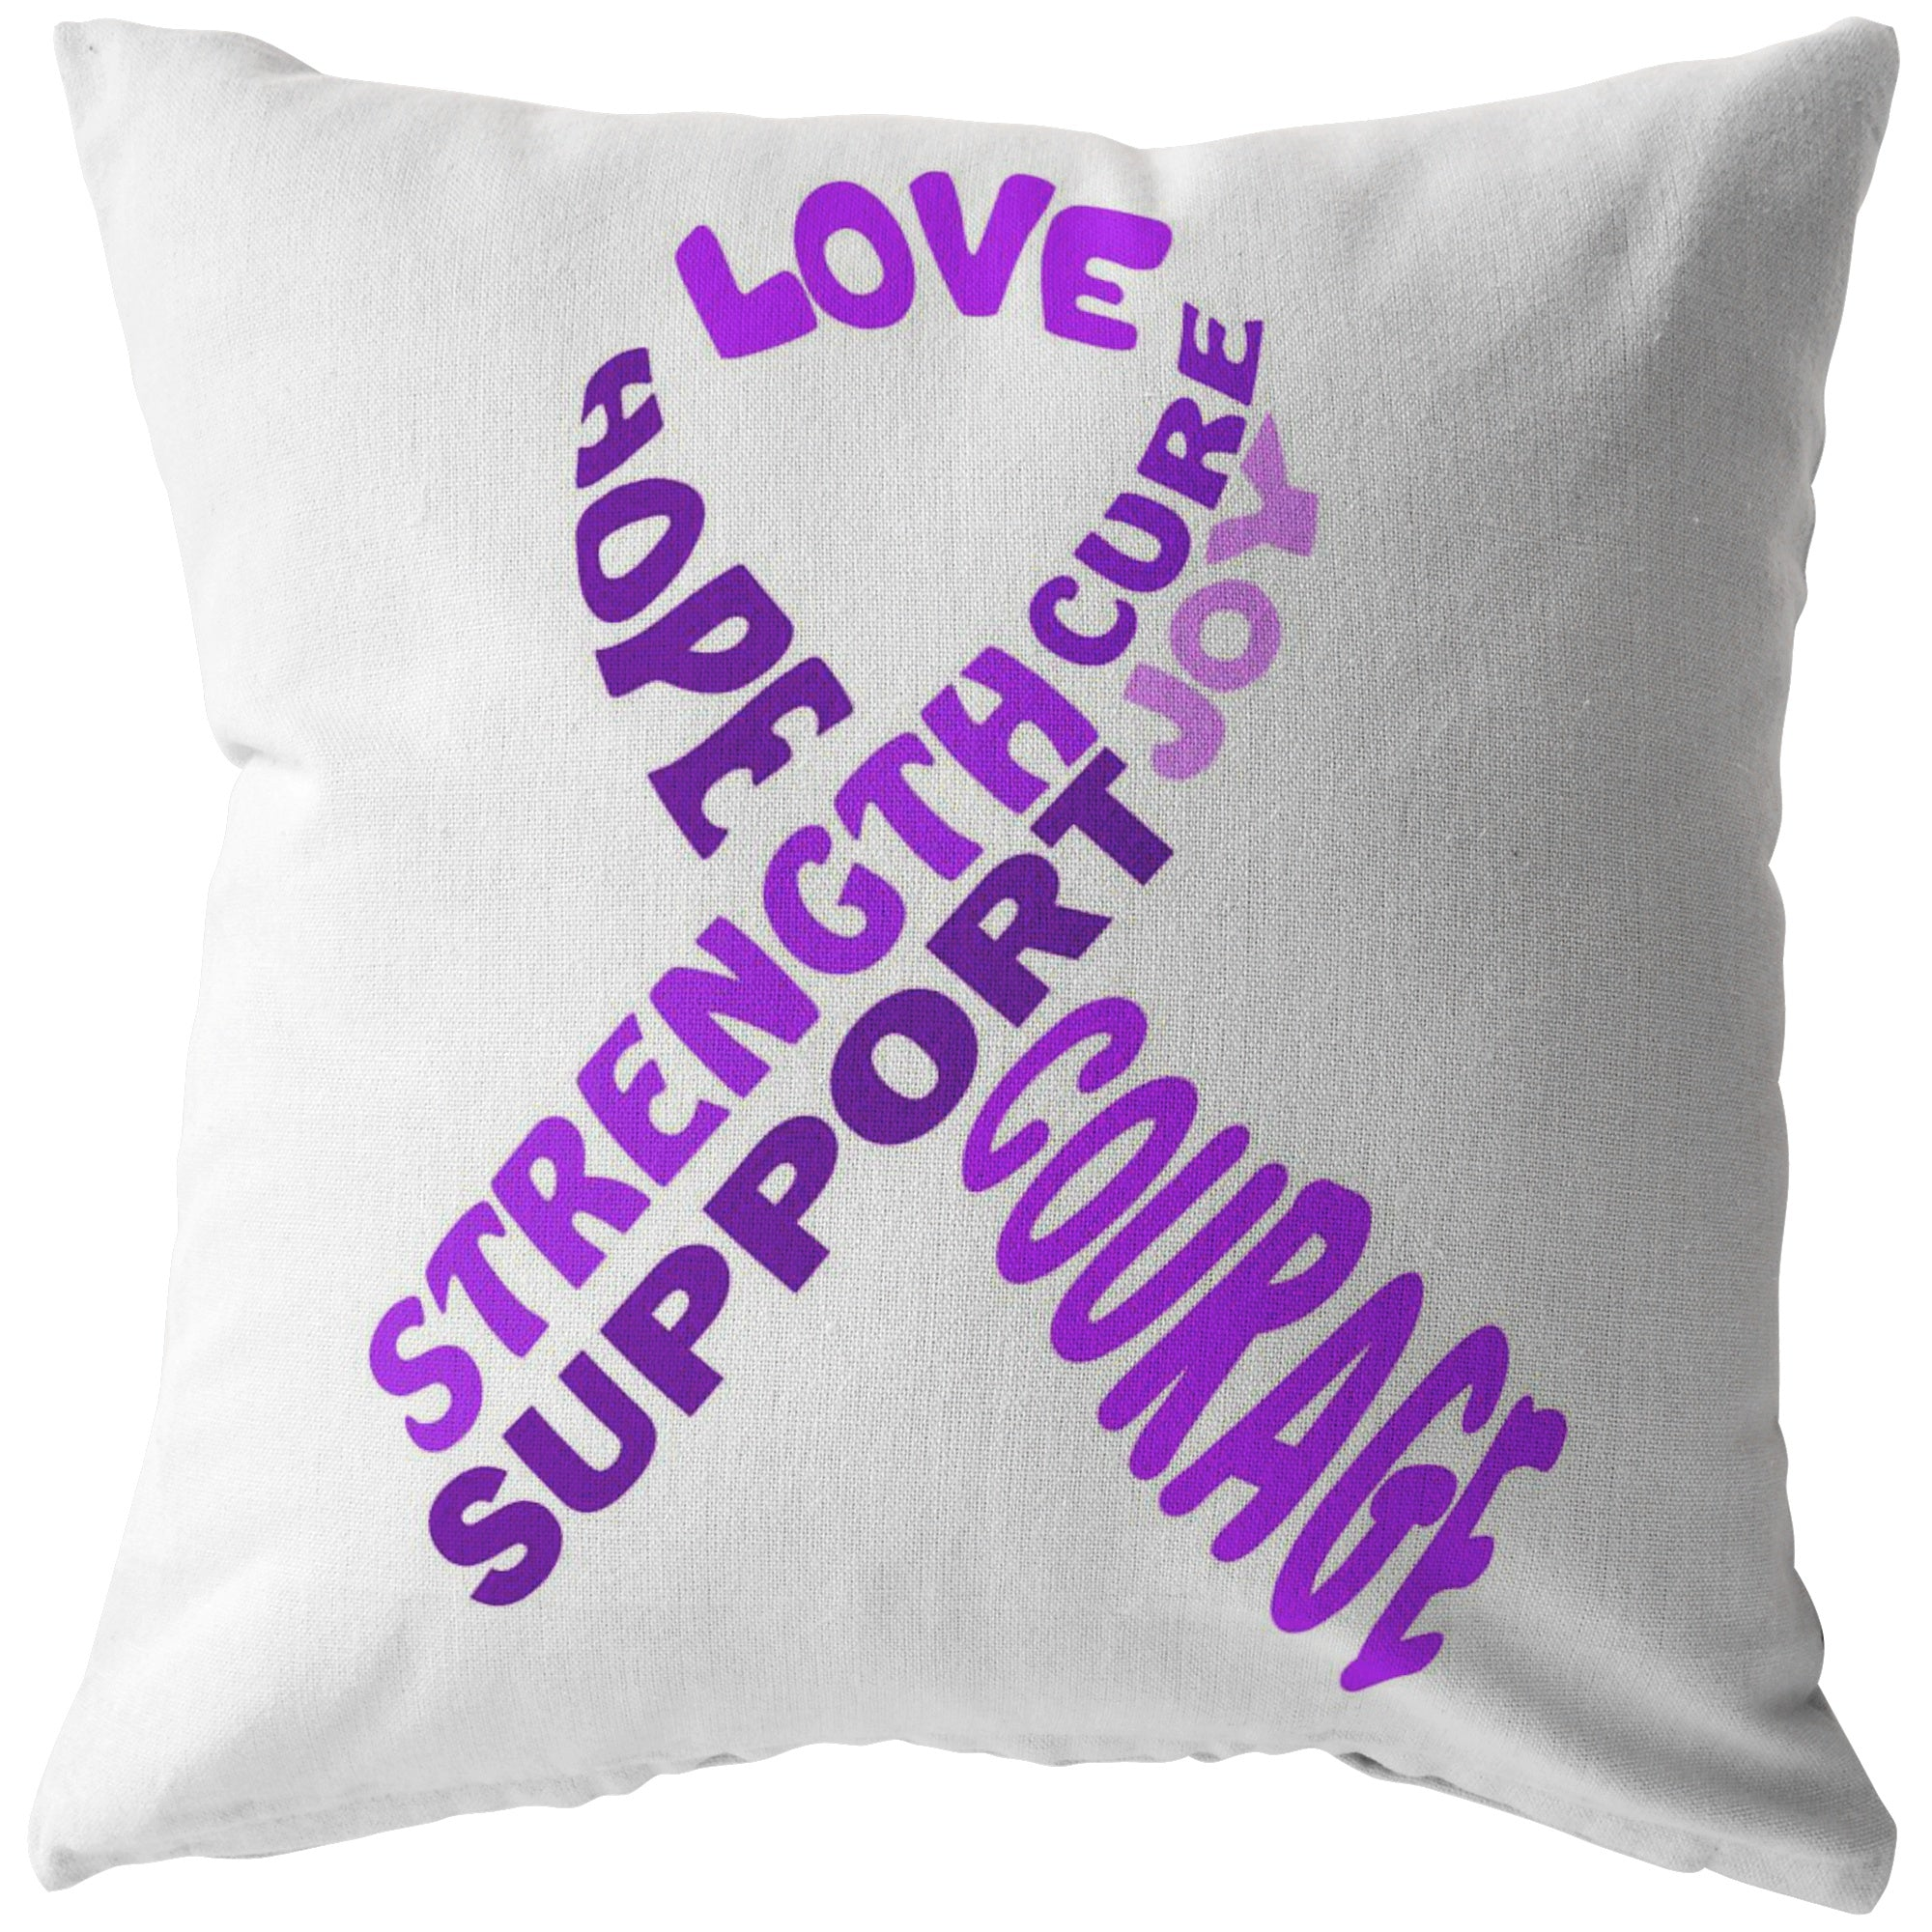 Purple Awareness Ribbon With Words Pillow - The Unchargeables